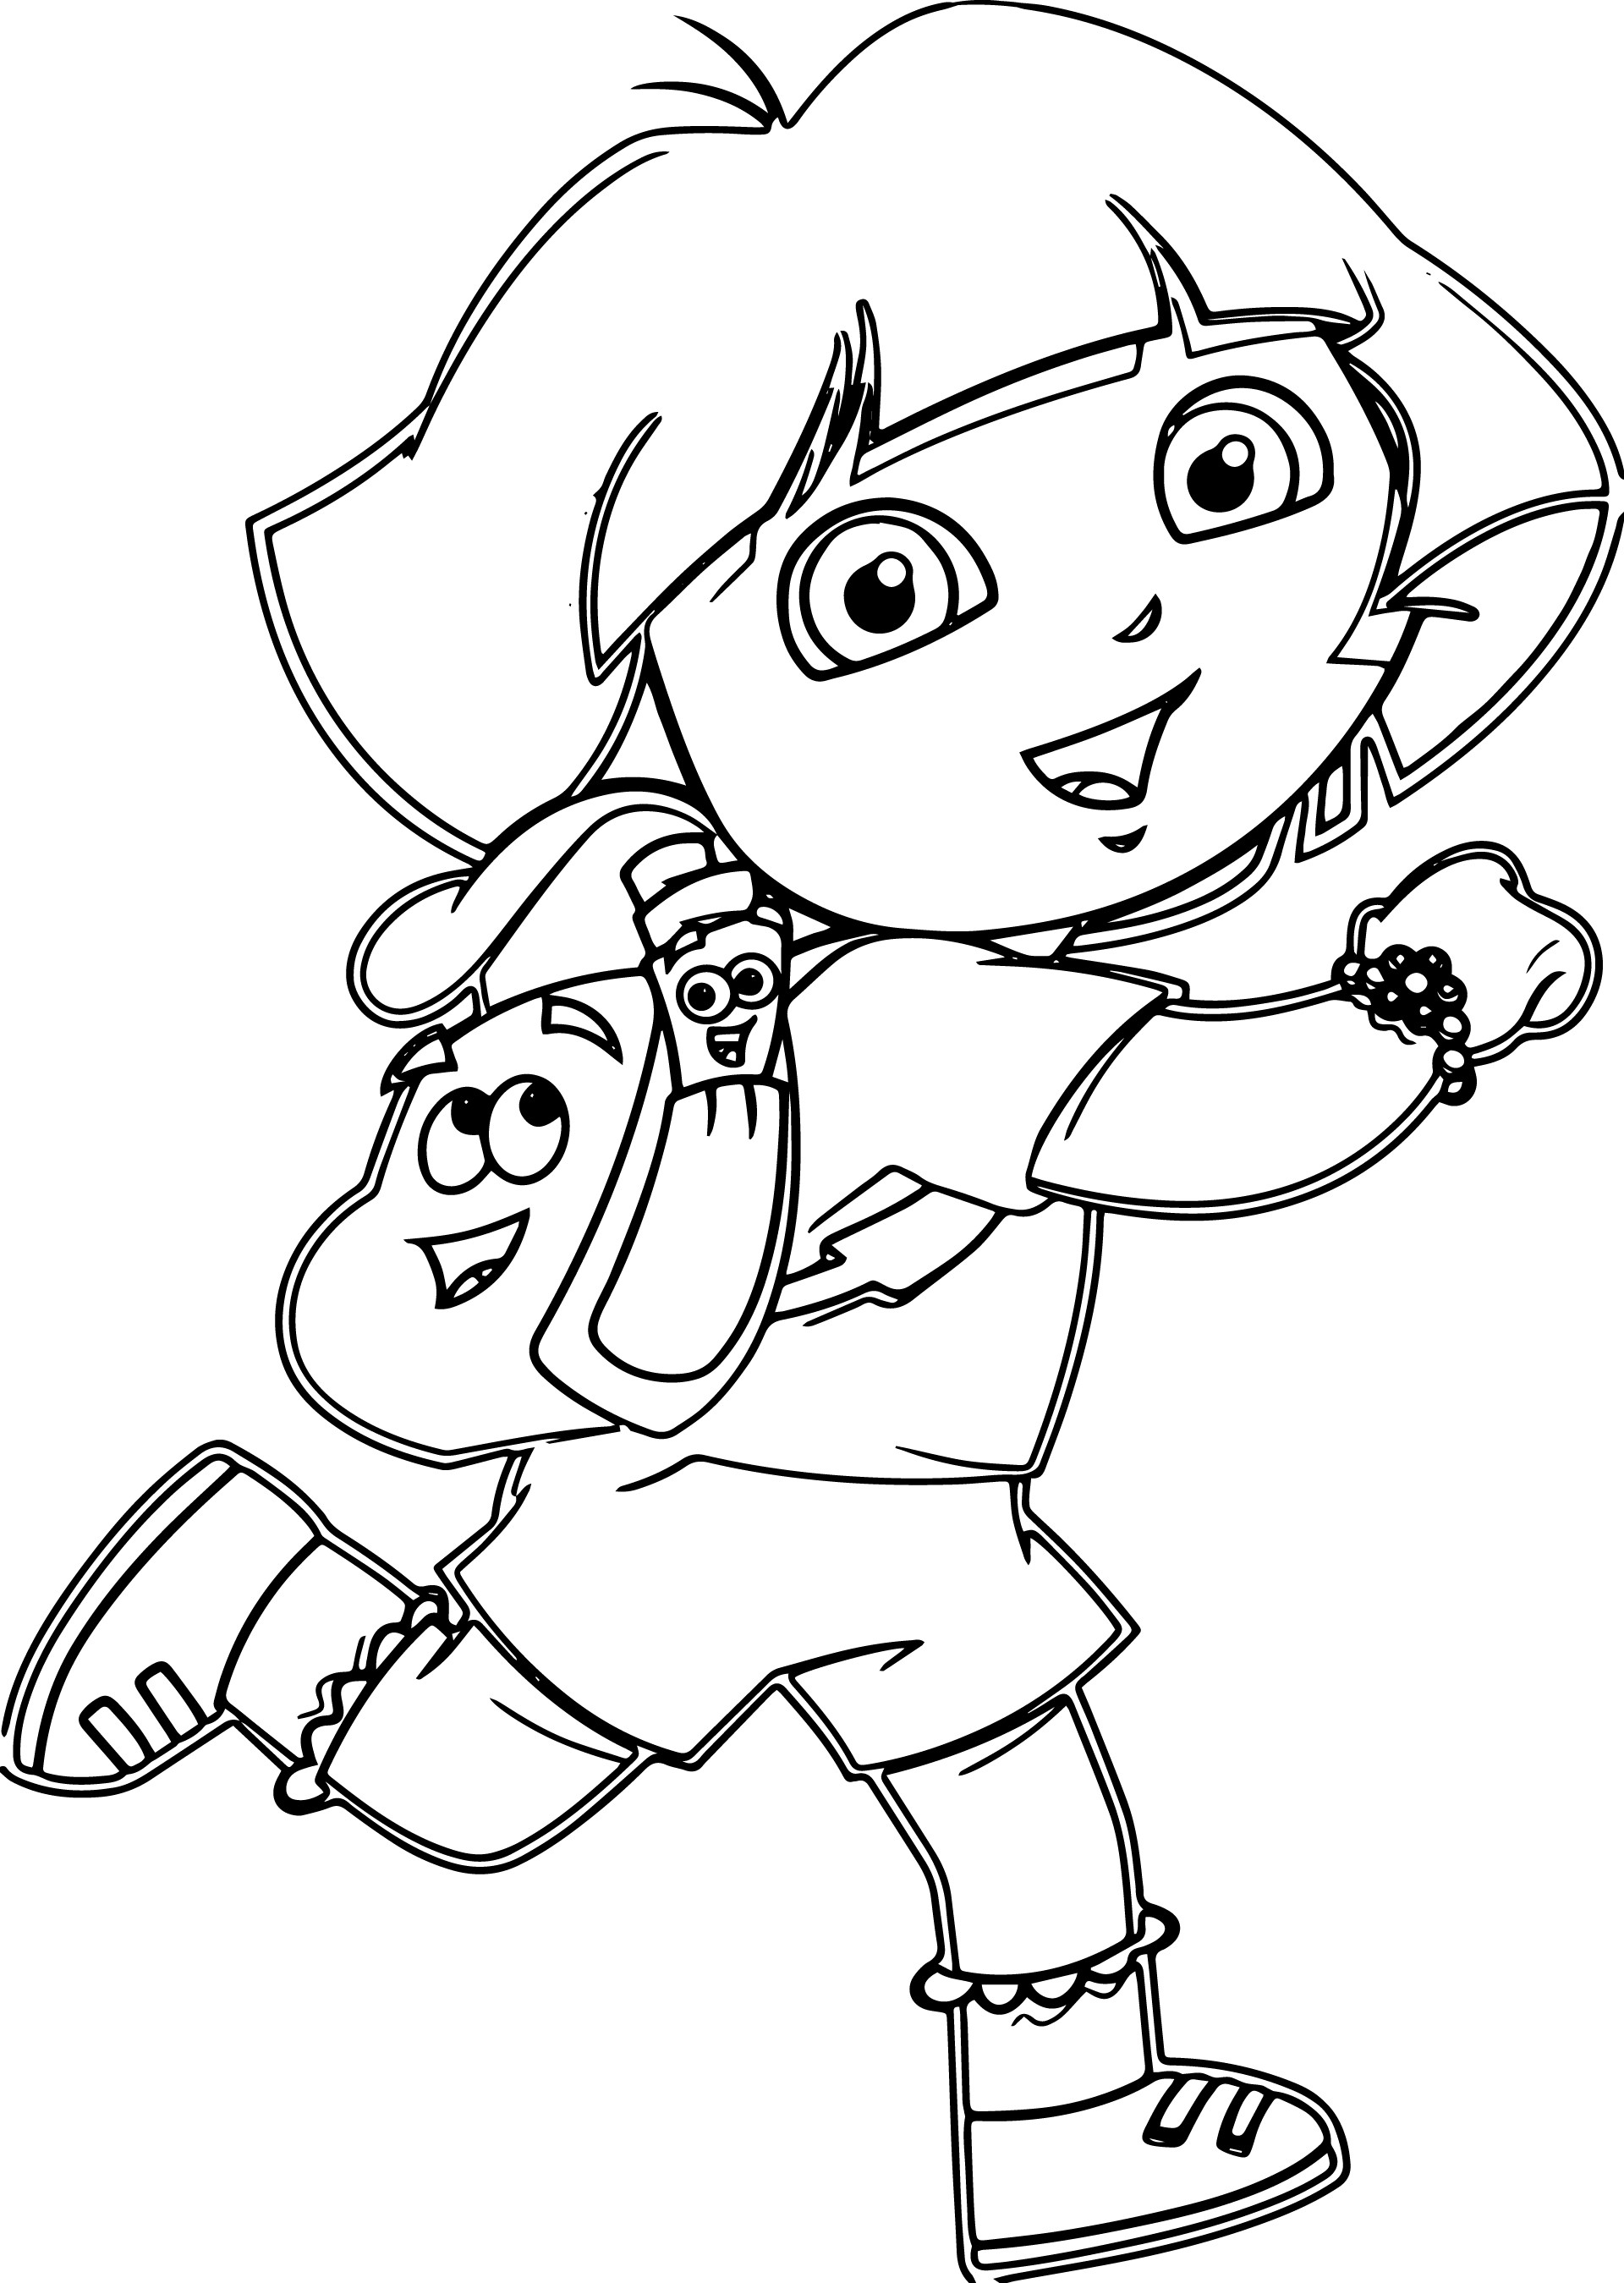 dora coloring the best free dora coloring page images download from 884 dora coloring